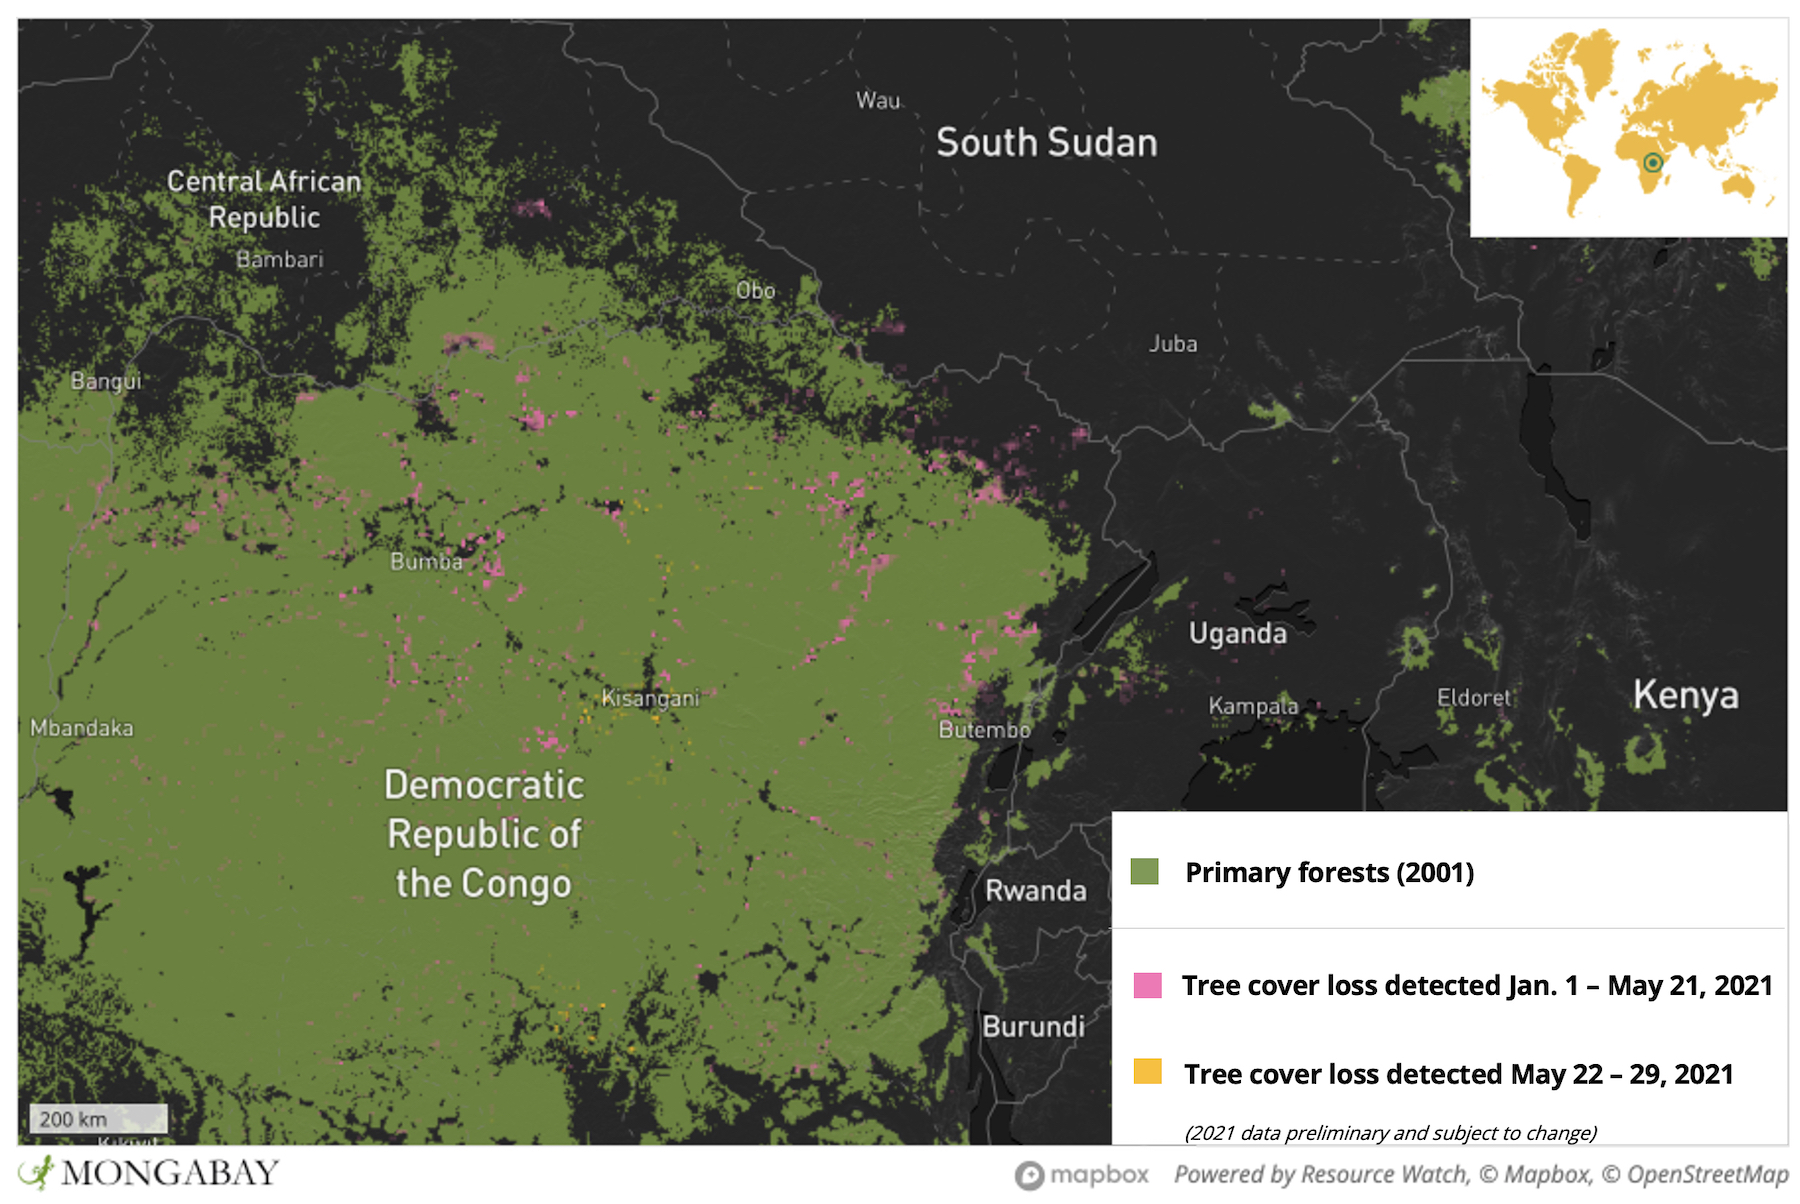 Much of this year's forest loss appears to be taking place in the country's northern portion, with the regions of Bas-Uélé, Mongala, Tshopo, Haut-Uélé and Ituri showing particularly high levels of deforestation activity. Even the DRC's reserves and parks are feeling the pressure, with satellite data and imagery showing recent incursions into forest that is supposed to be under official protection.